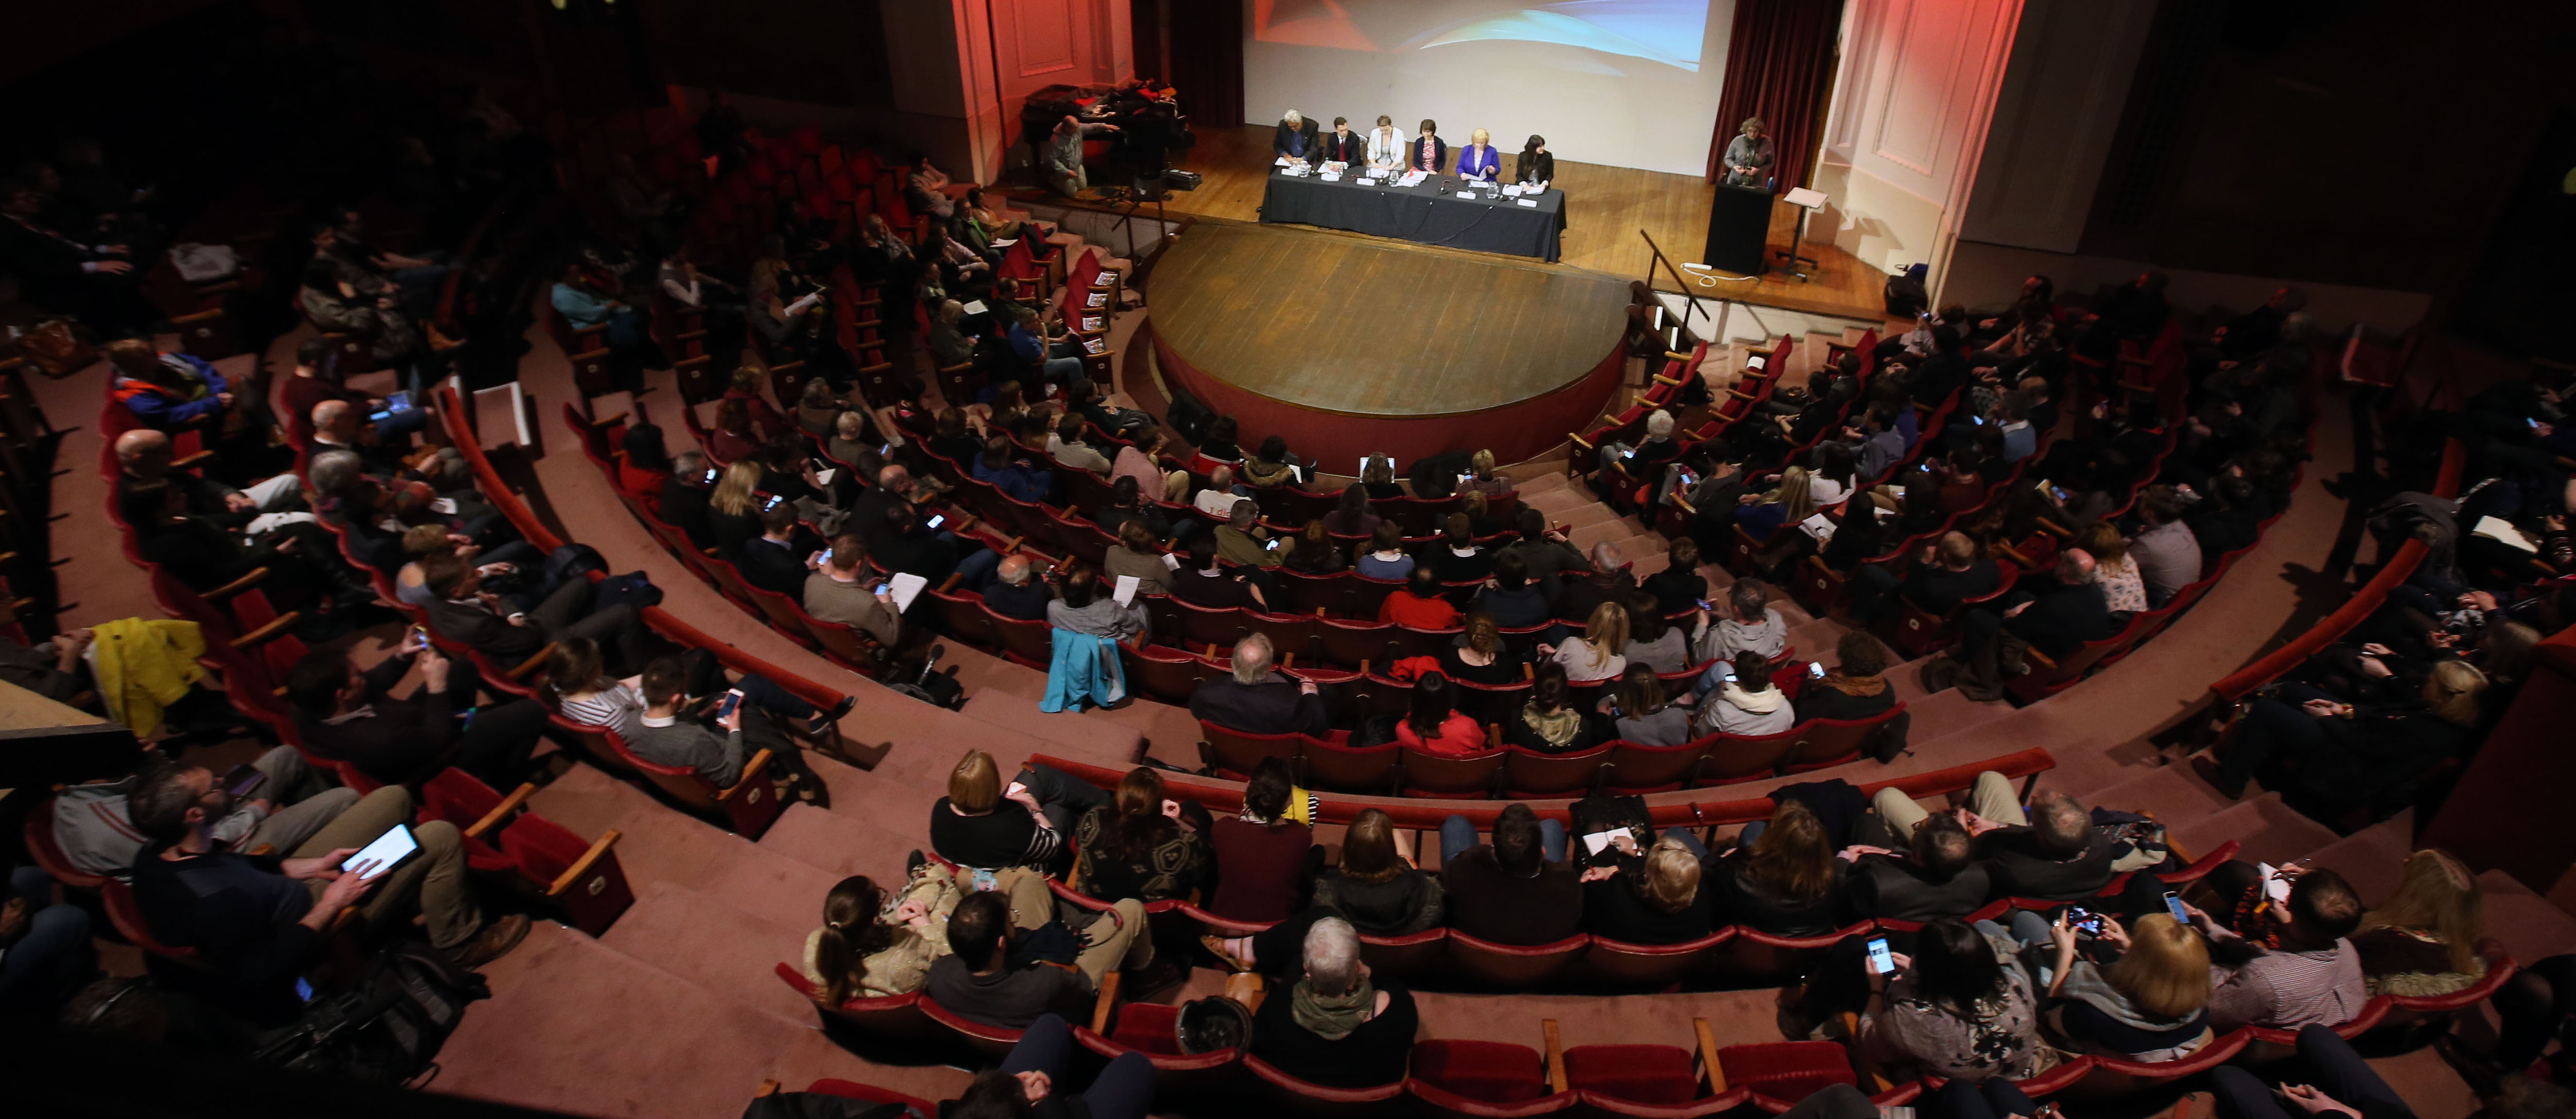 Audience and panel in Reardon Smith theatre